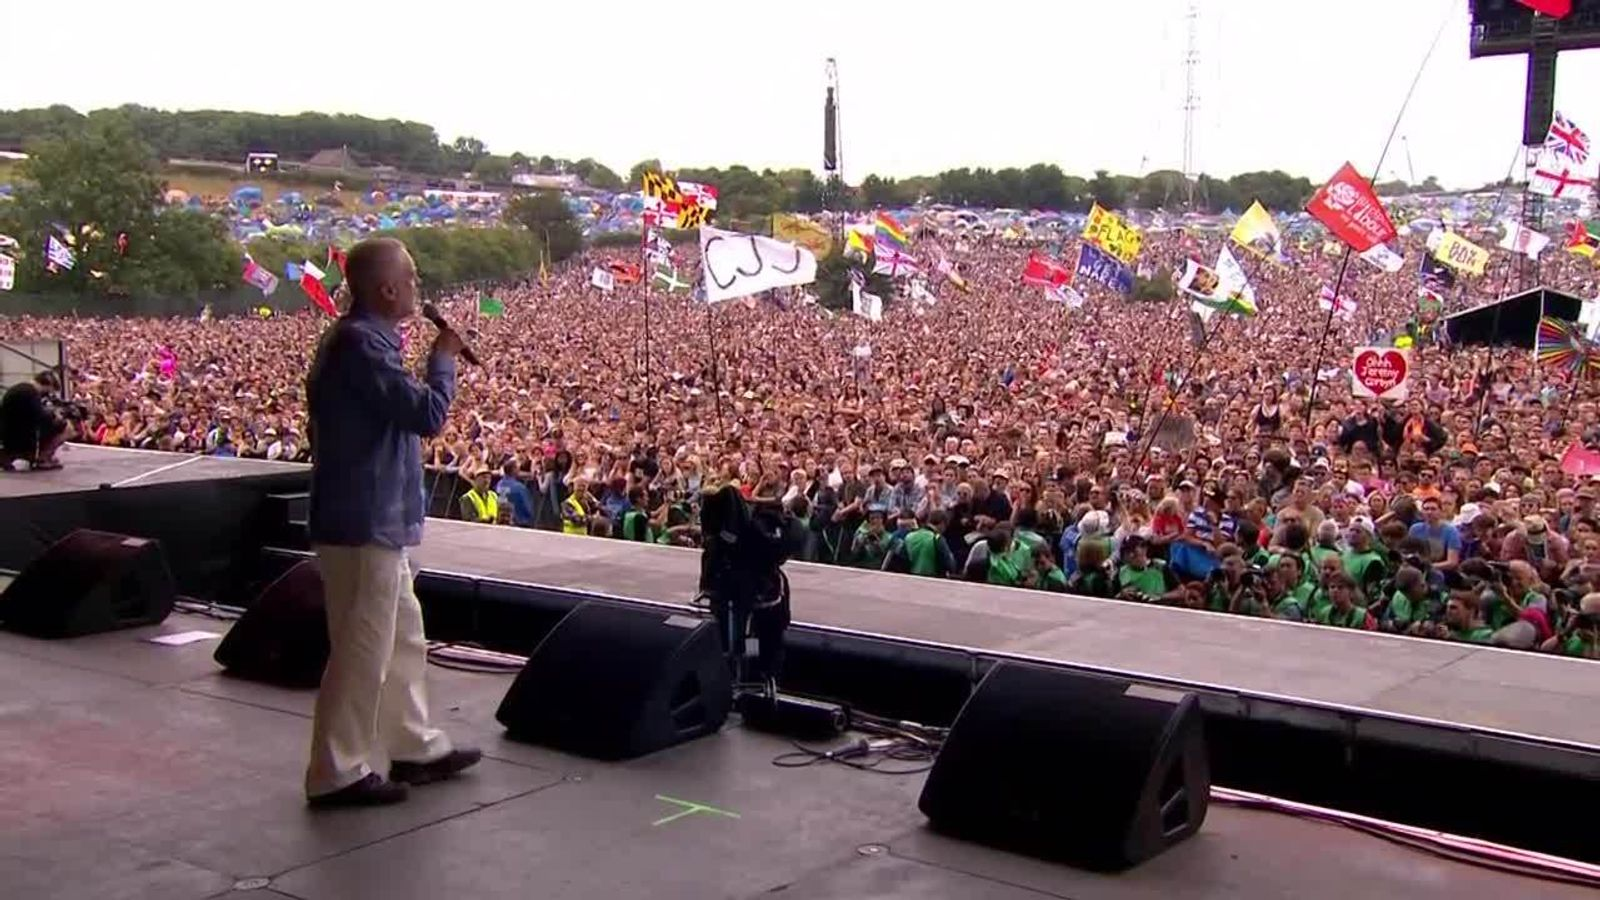 Jeremy Corbyn addresses The Glastonbury festival